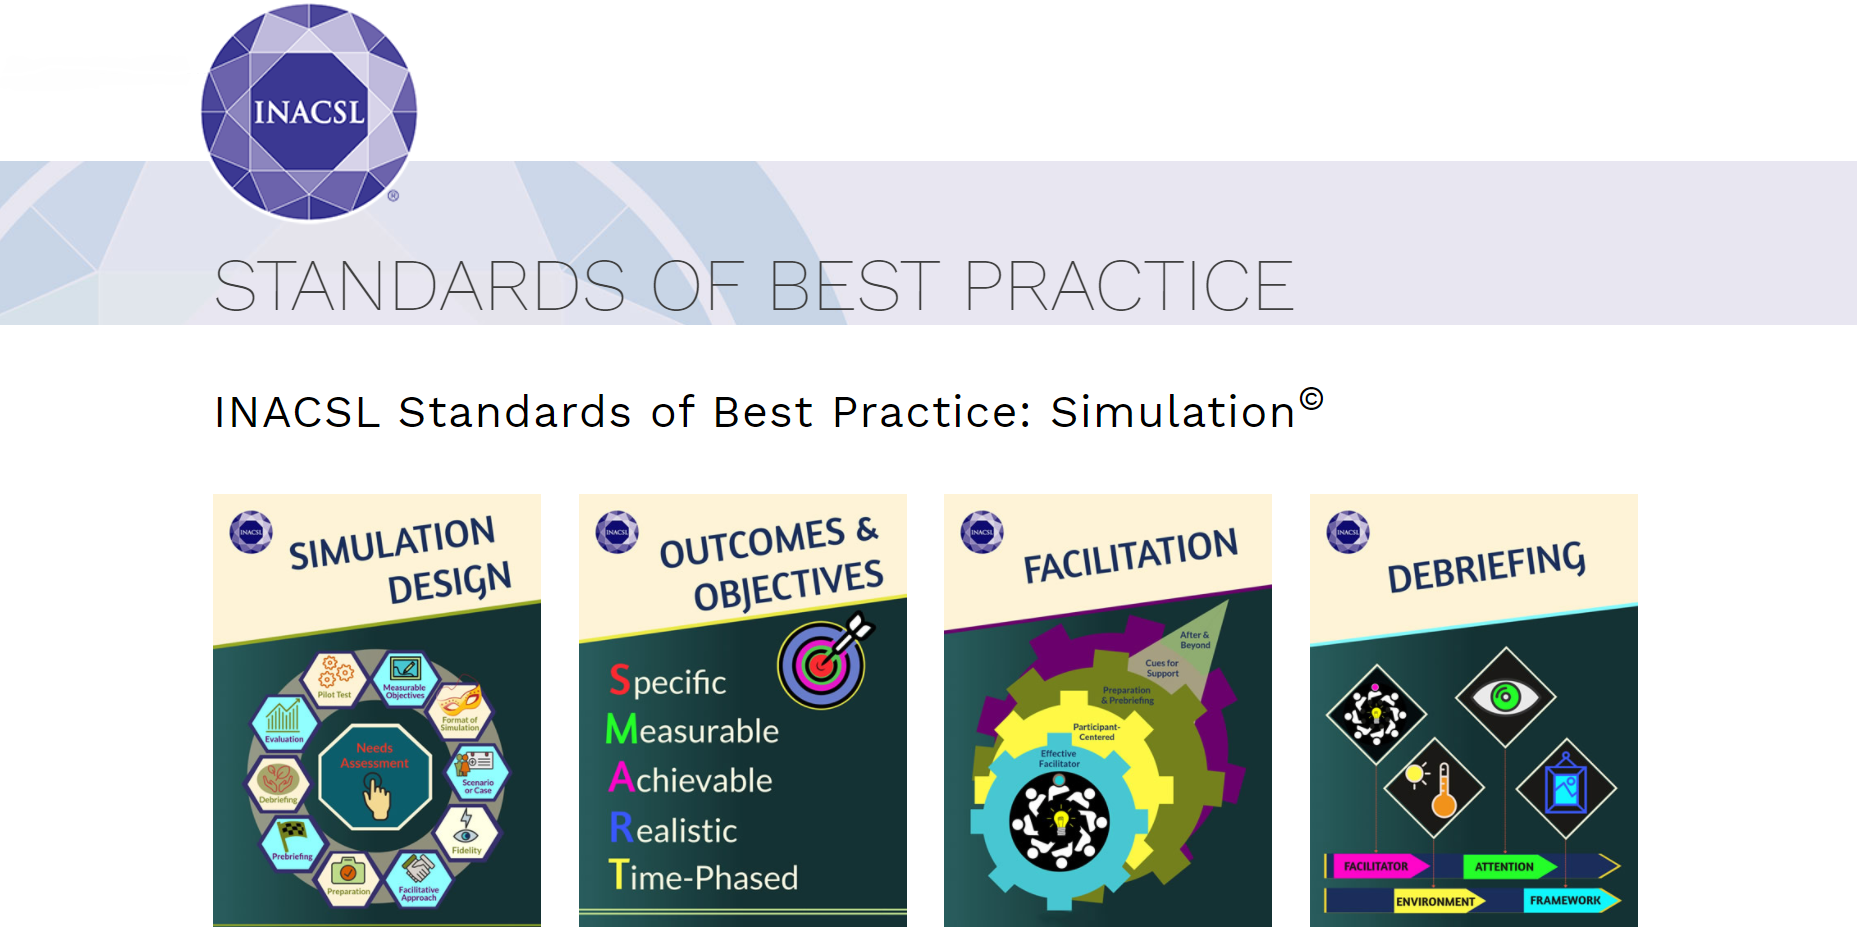 Simulation Standards of Best Practice are Integral to the UbiSim Platform